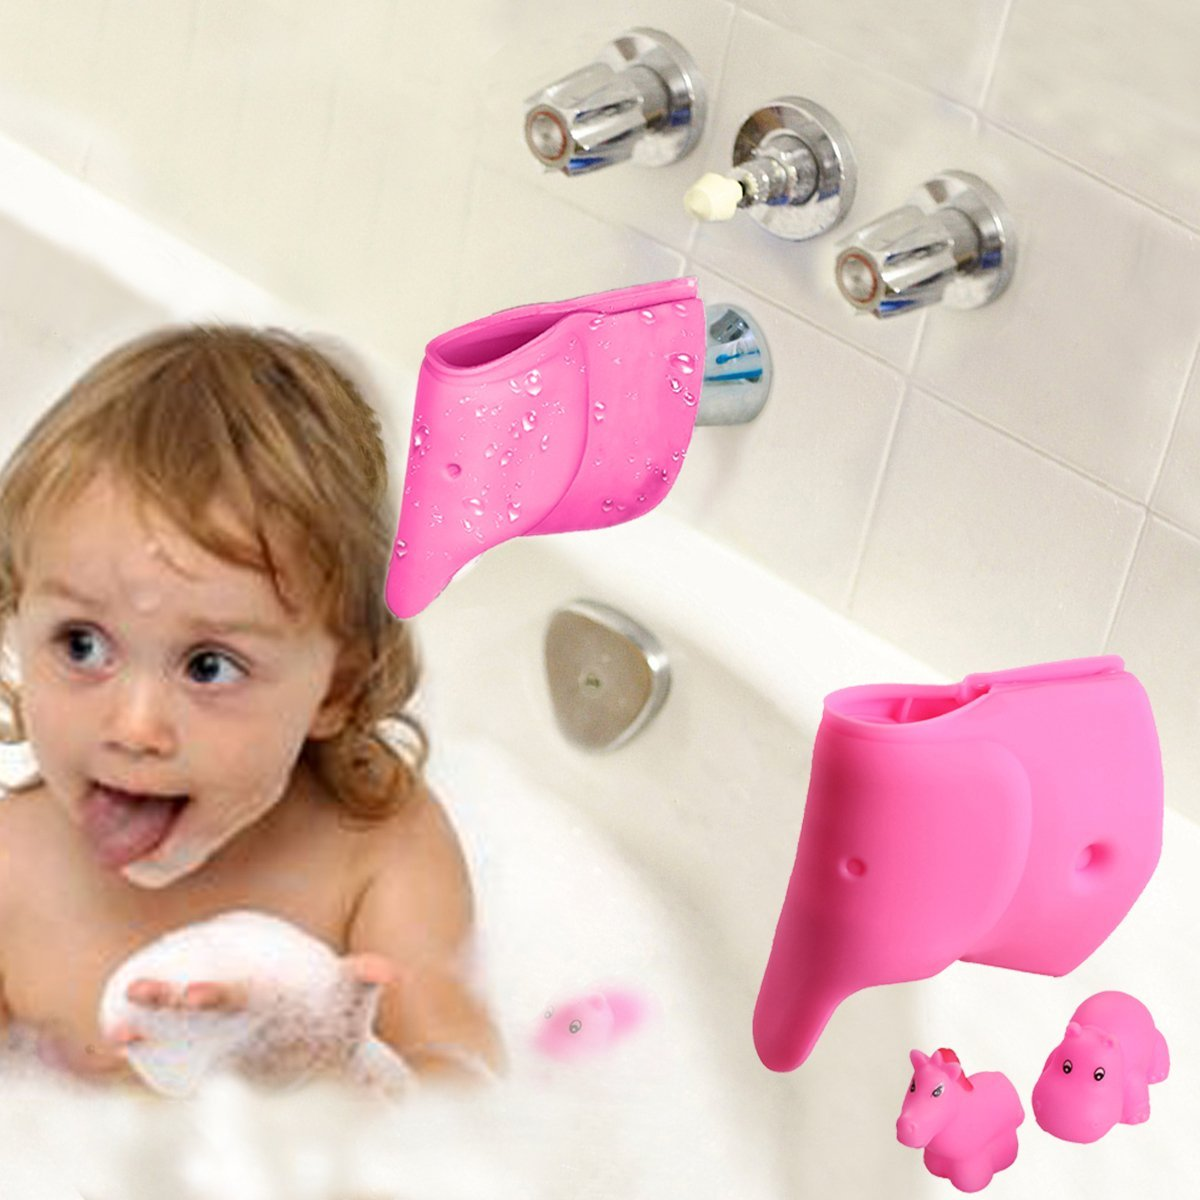 Bath Spout Cover - Bathtub Faucet Cover for Kid - Bath Tub Faucet Extender Protector For Baby - Silicone Soft Spout Cover Baby Pink Elephant - Child ...